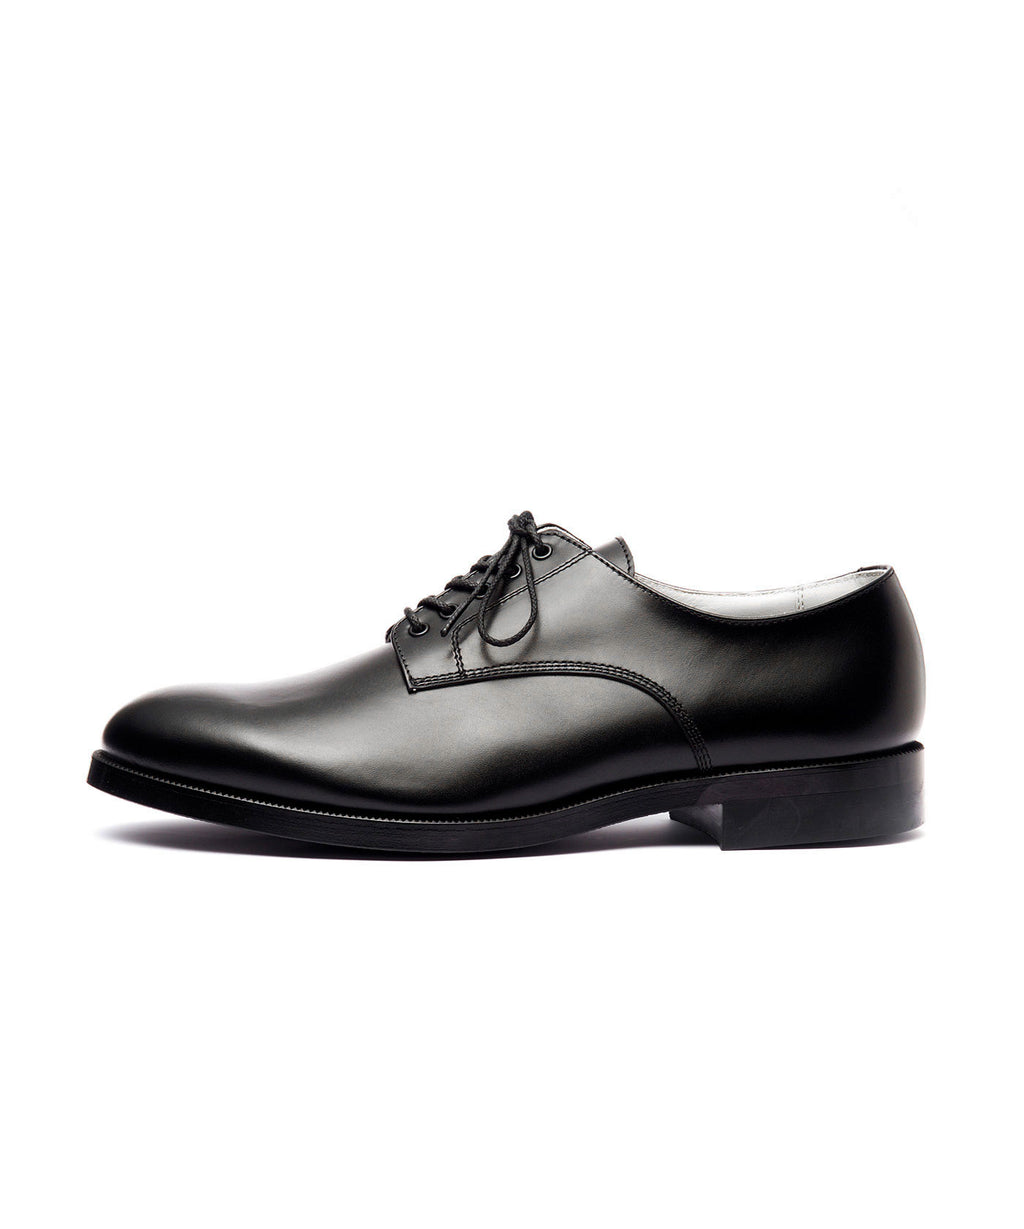 FOOTSTOCK フットストック SERVICEMAN SHOES BLACK 公式通販 session